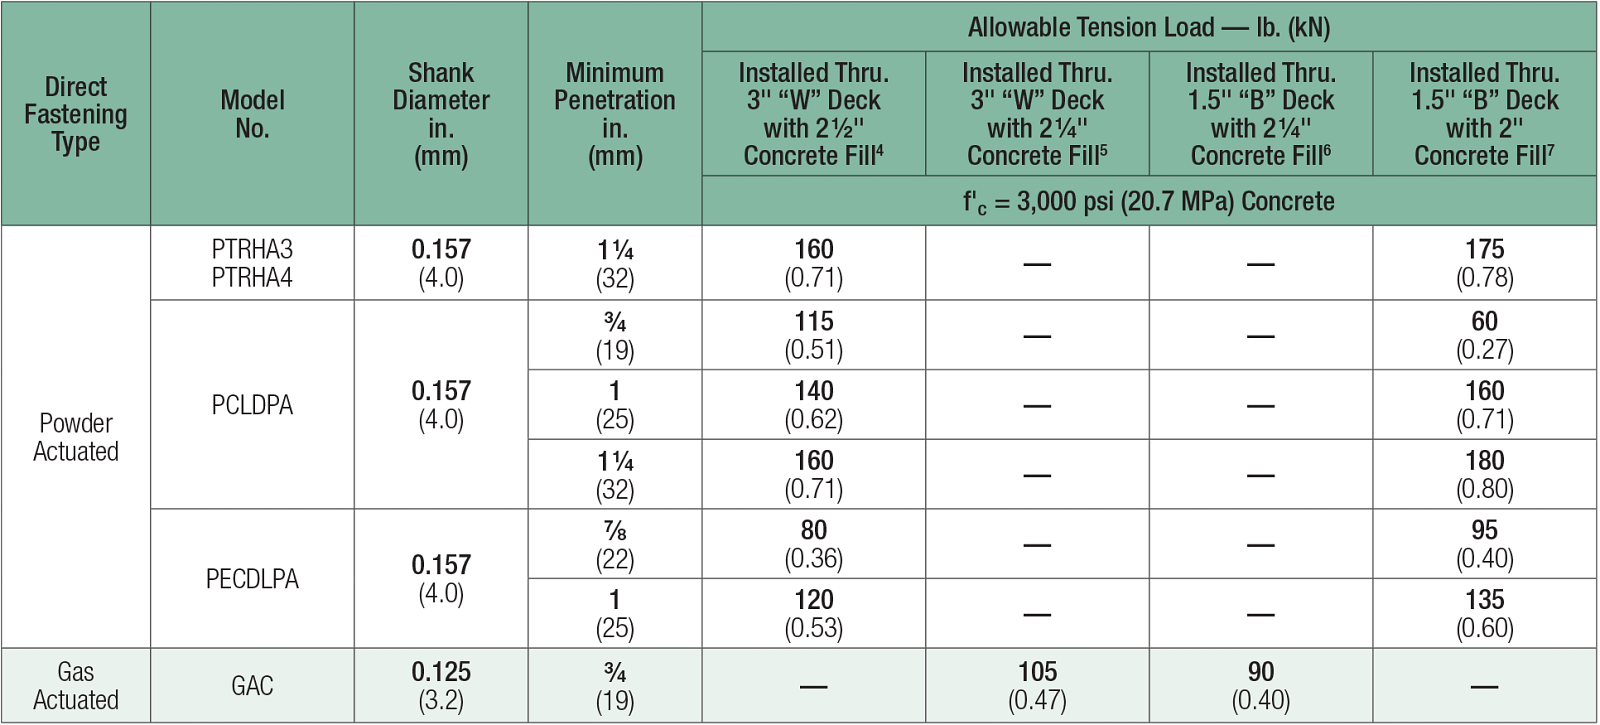 Table: PPowder-Actuated and Gas-Actuated Assemblies – Allowable Tension Loads in Sand-Lightweight Concrete over Steel Deck